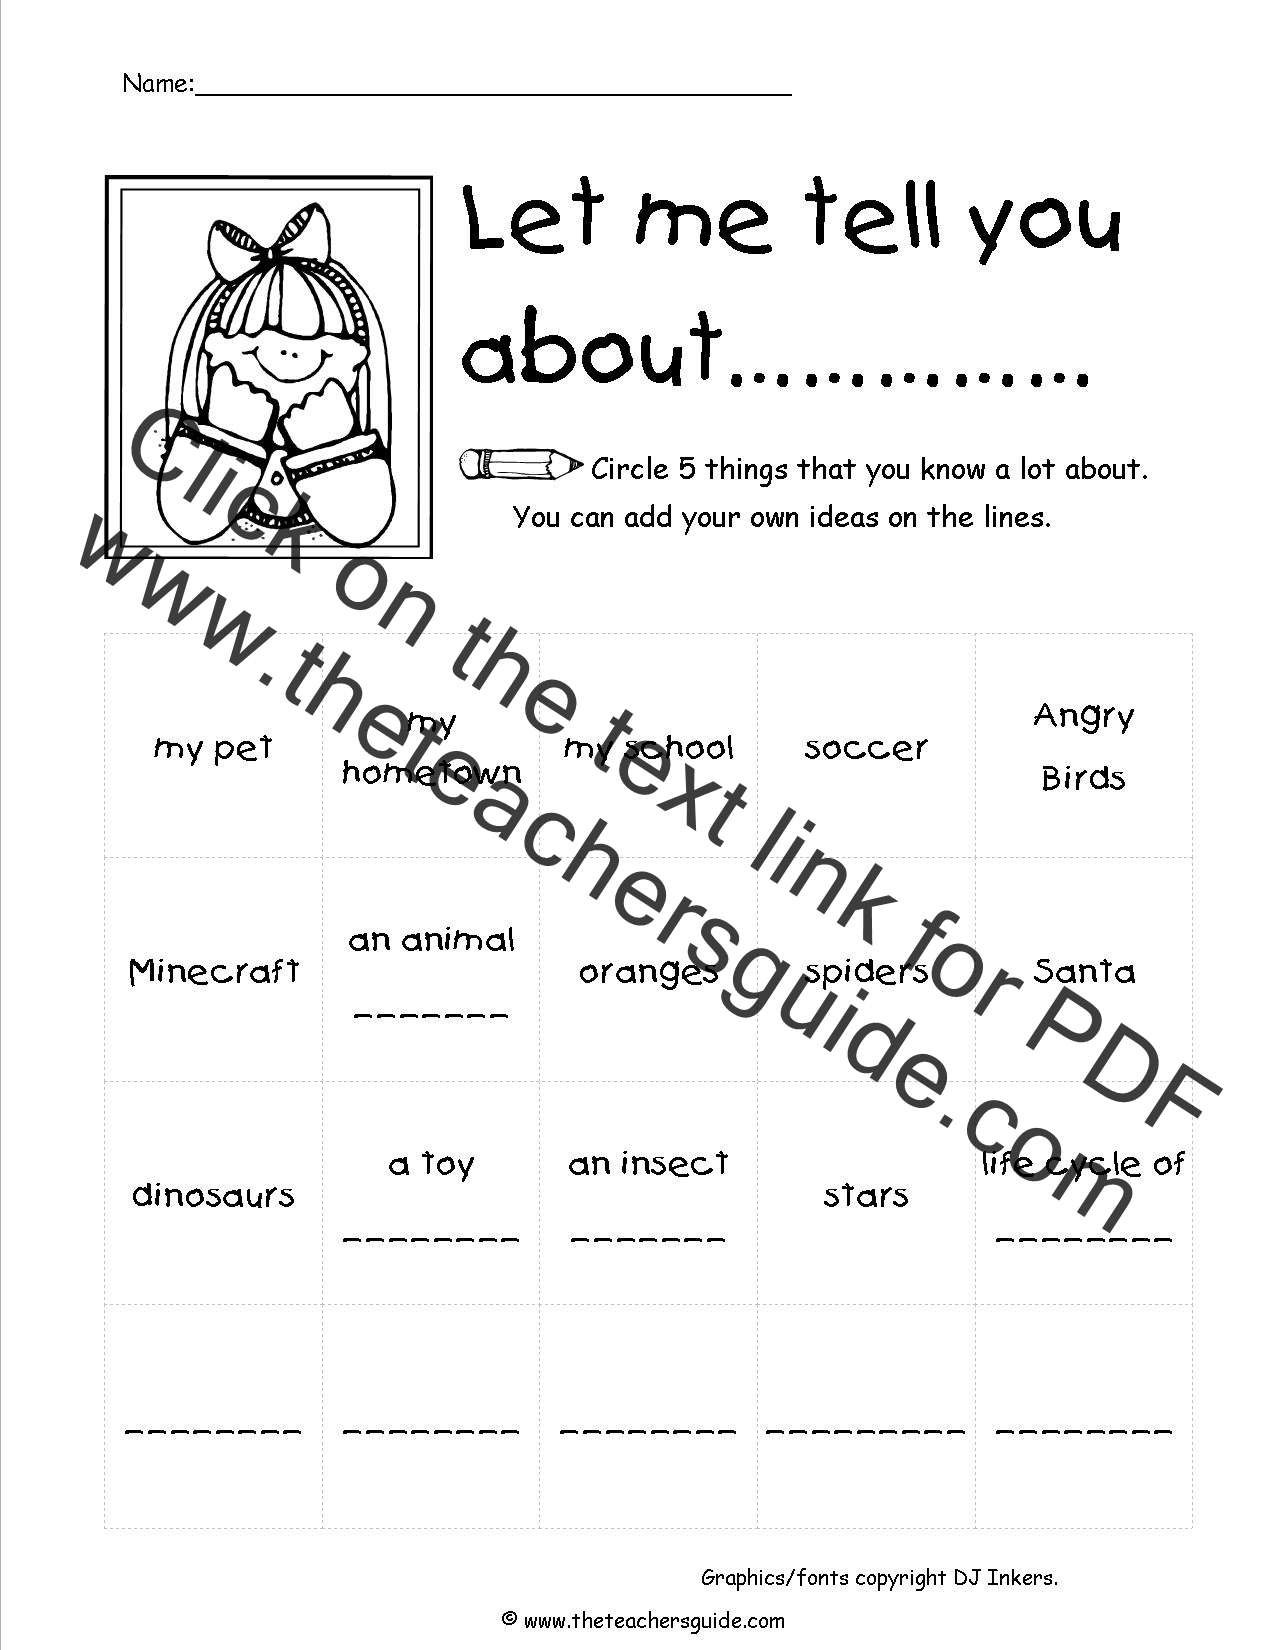 CCSS.ELA-Literacy.W.2.2 Worksheets